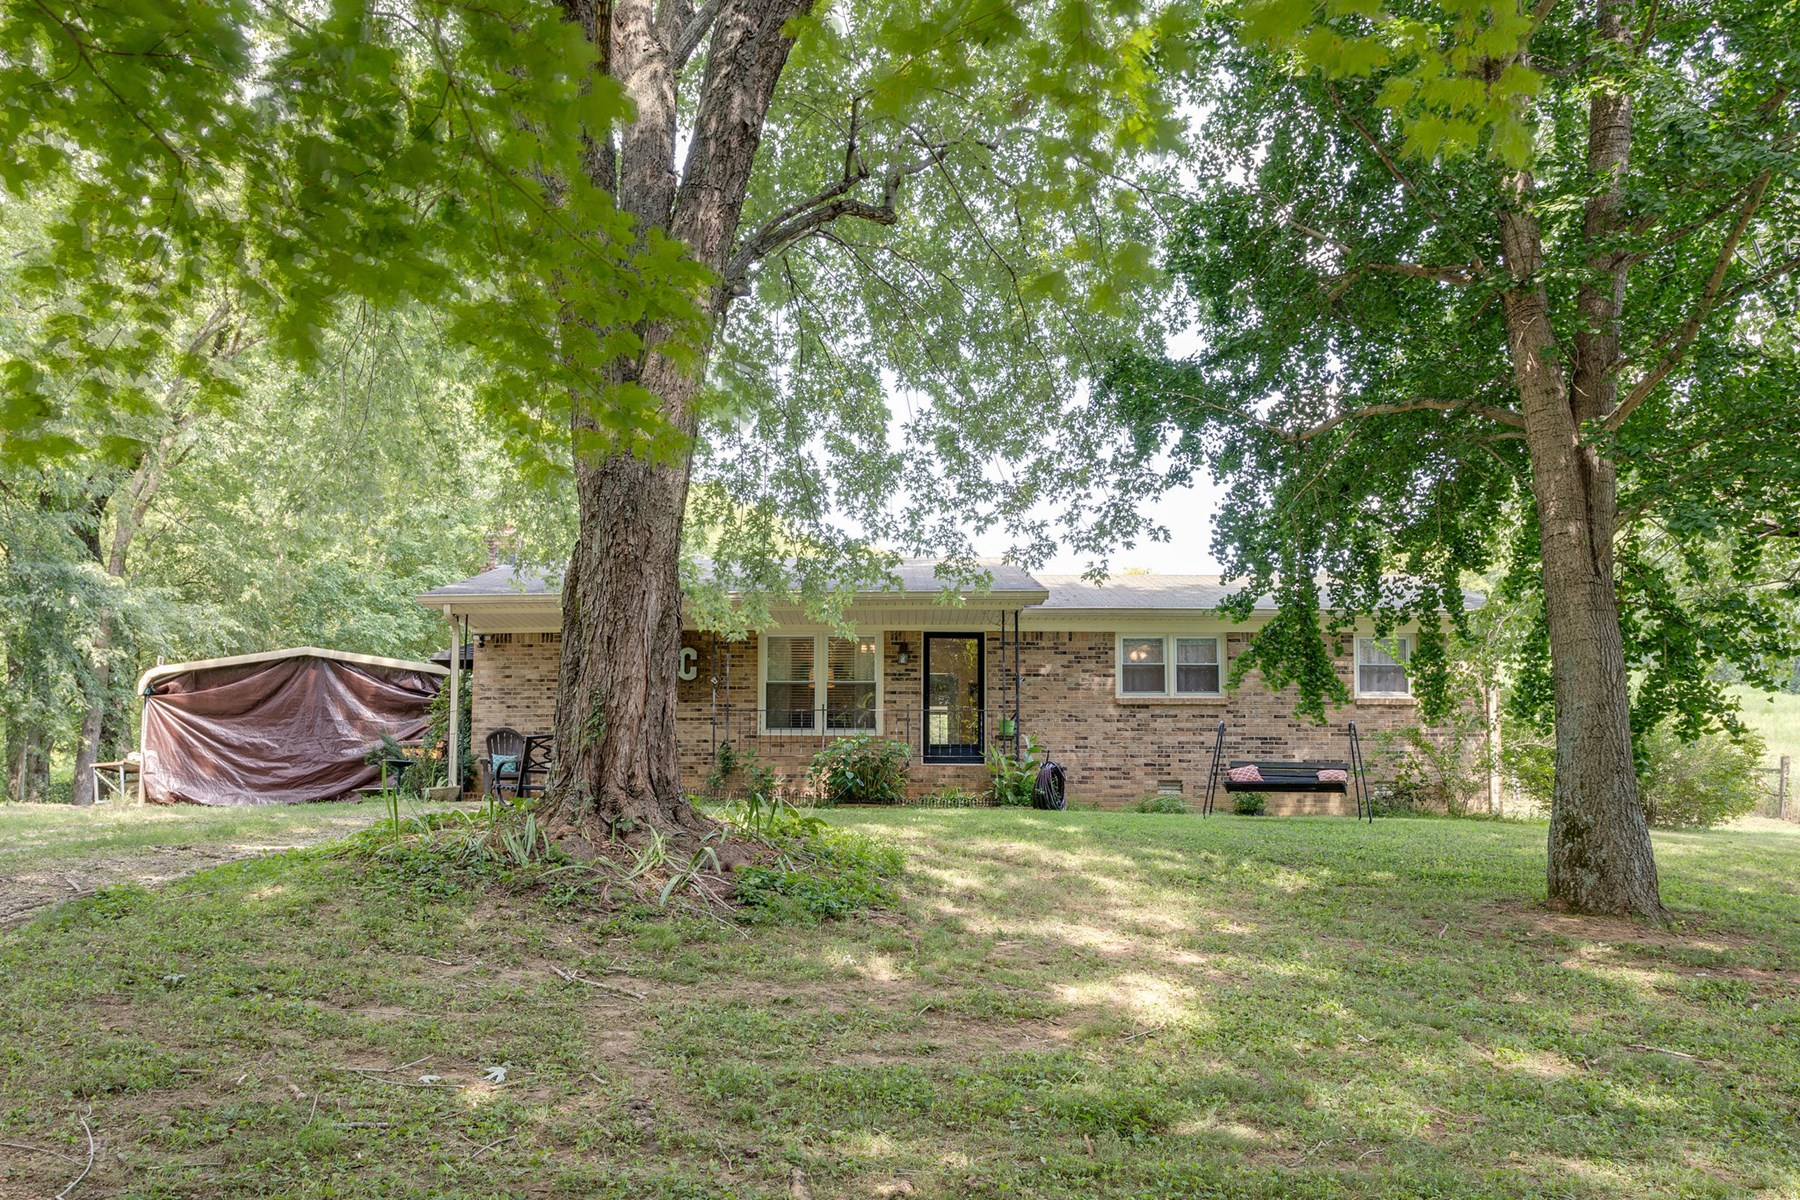 All Brick Home on 1 Acre, in Columbia, Tennessee